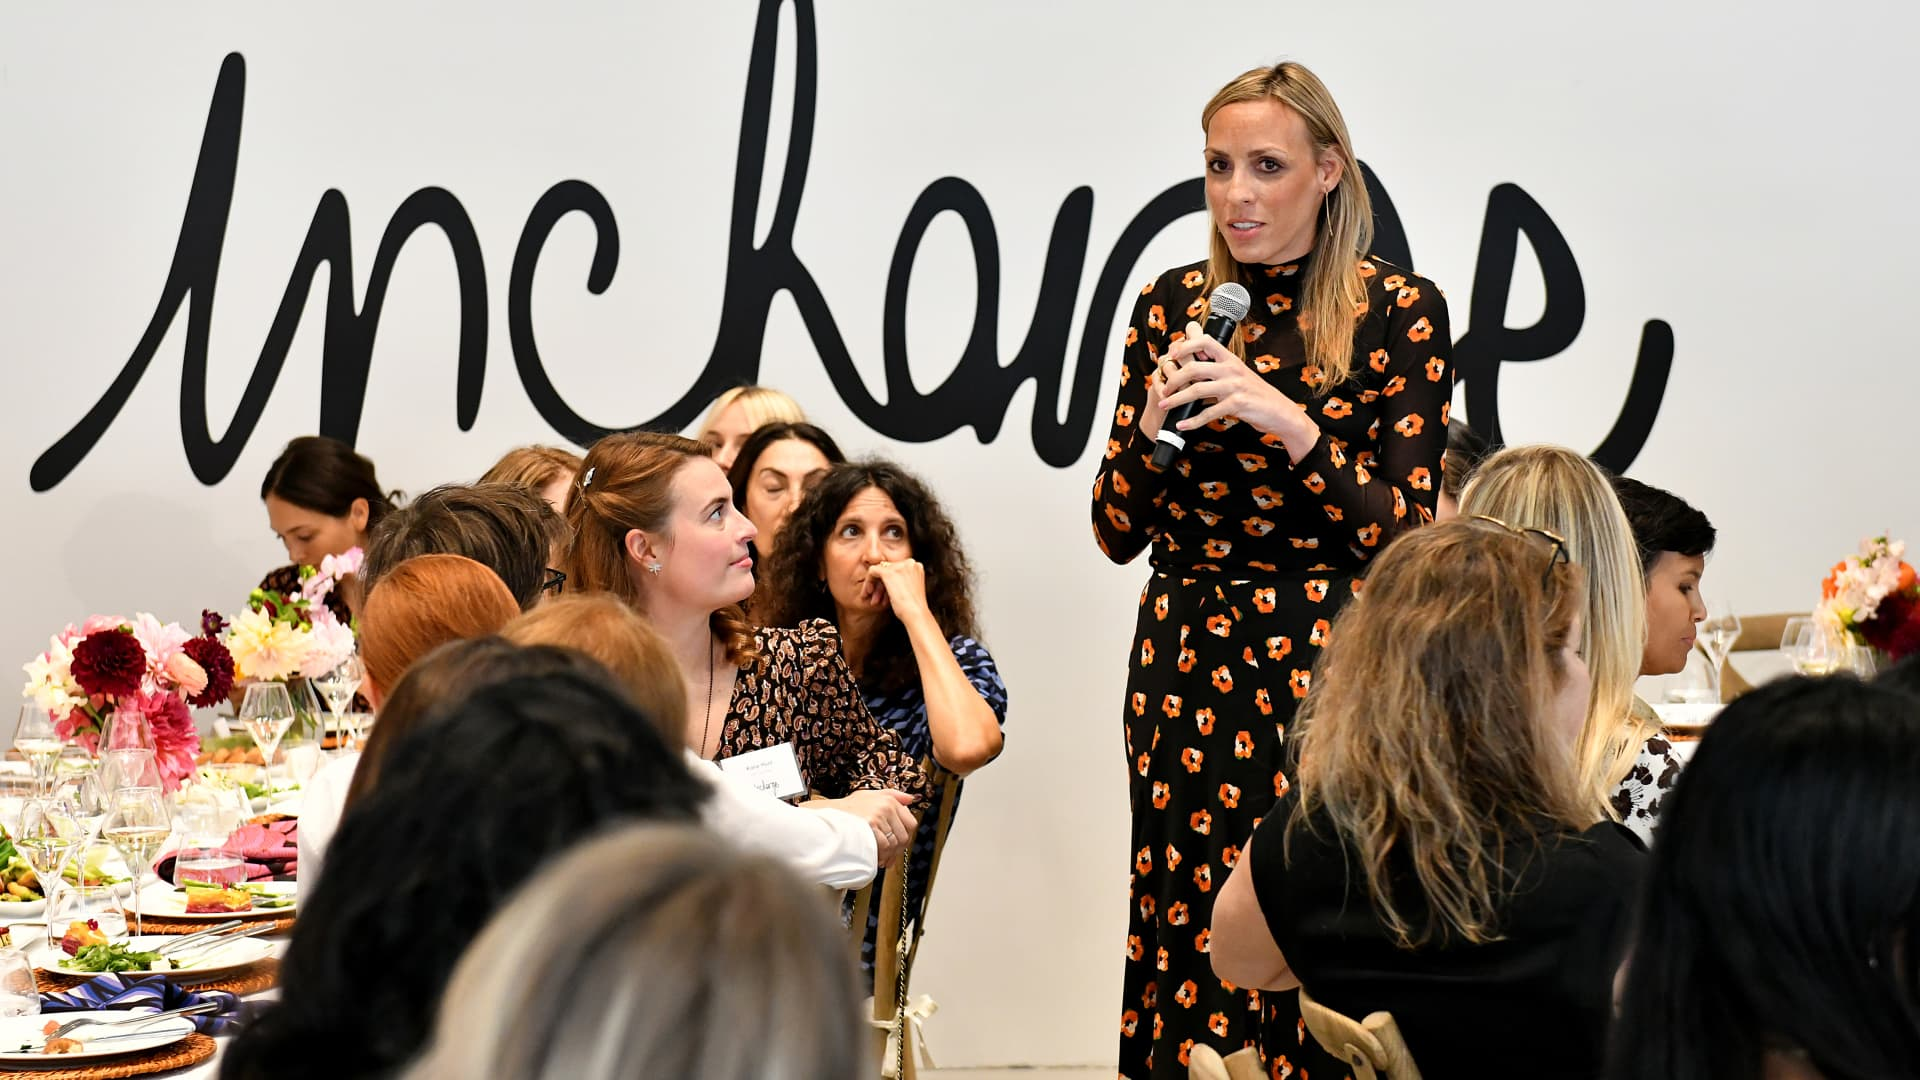 The Helm's Lindsey Taylor Wood speaks at a Sept. 5, 2019 In Charge Luncheon hosted by Diane von Furstenberg and LinkedIn in New York.